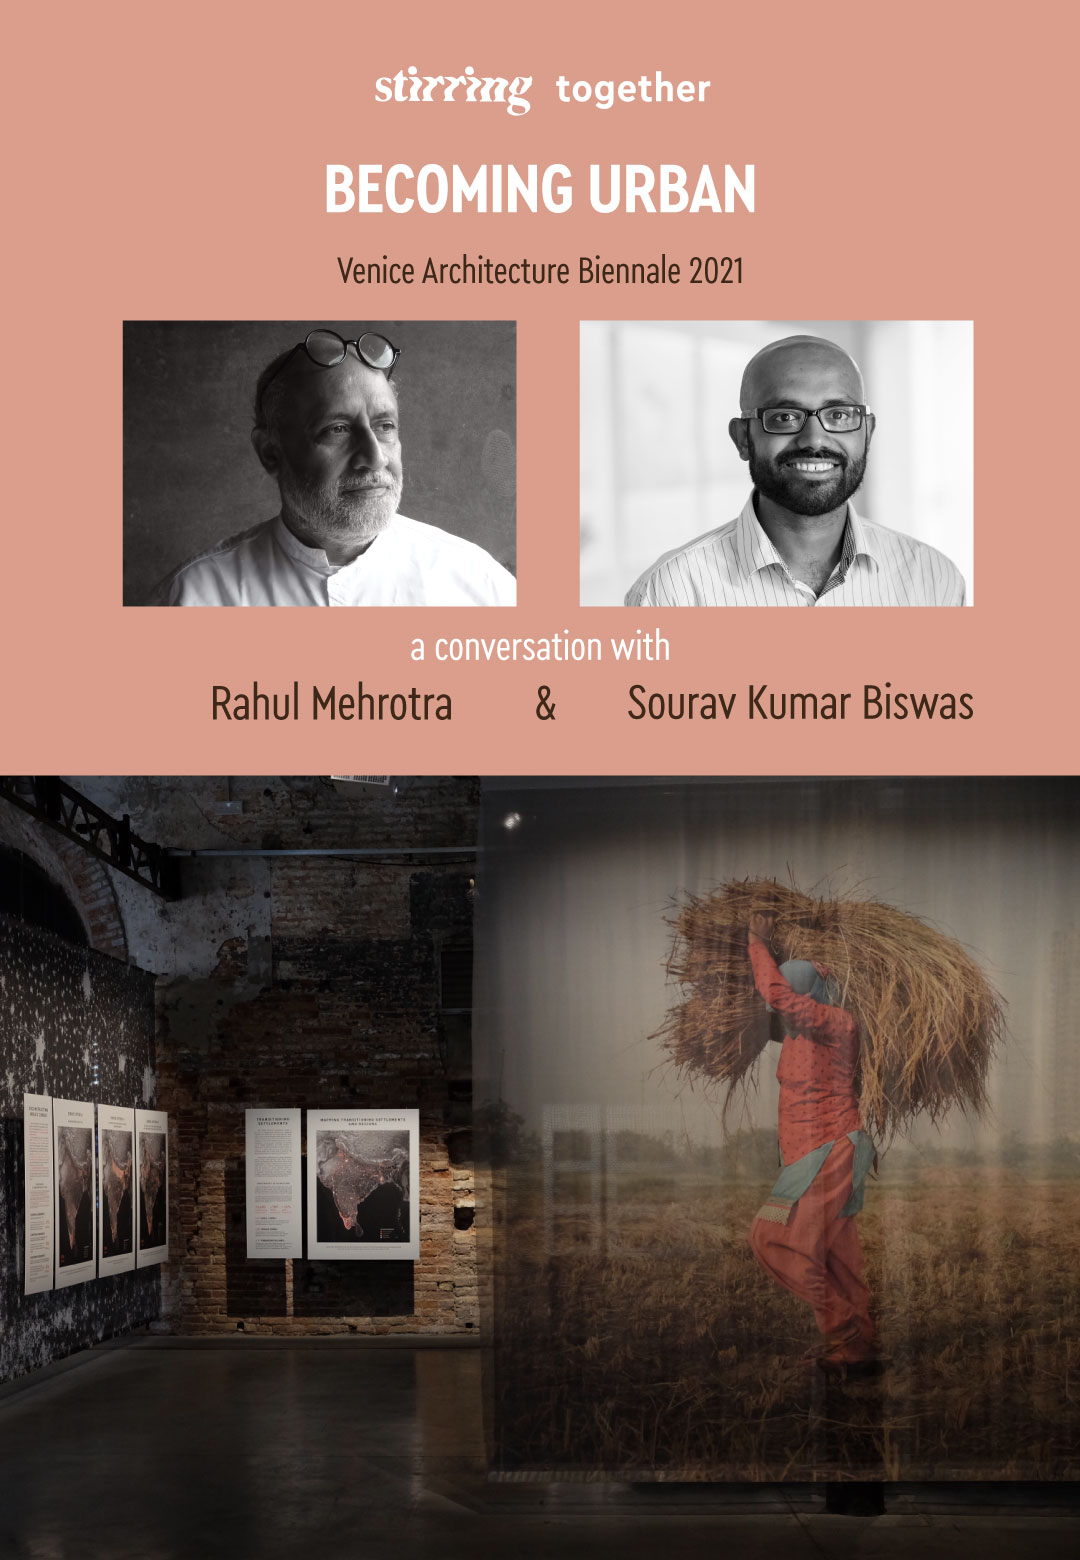 STIRring Together: Rahul Mehrotra and Sourav Biswas on Becoming Urban   Venice Architecture Biennale 2021   Rahul Mehrotra   Sourav Biswas   Becoming Urban: Trajectories of Urbanization in India   STIRworld